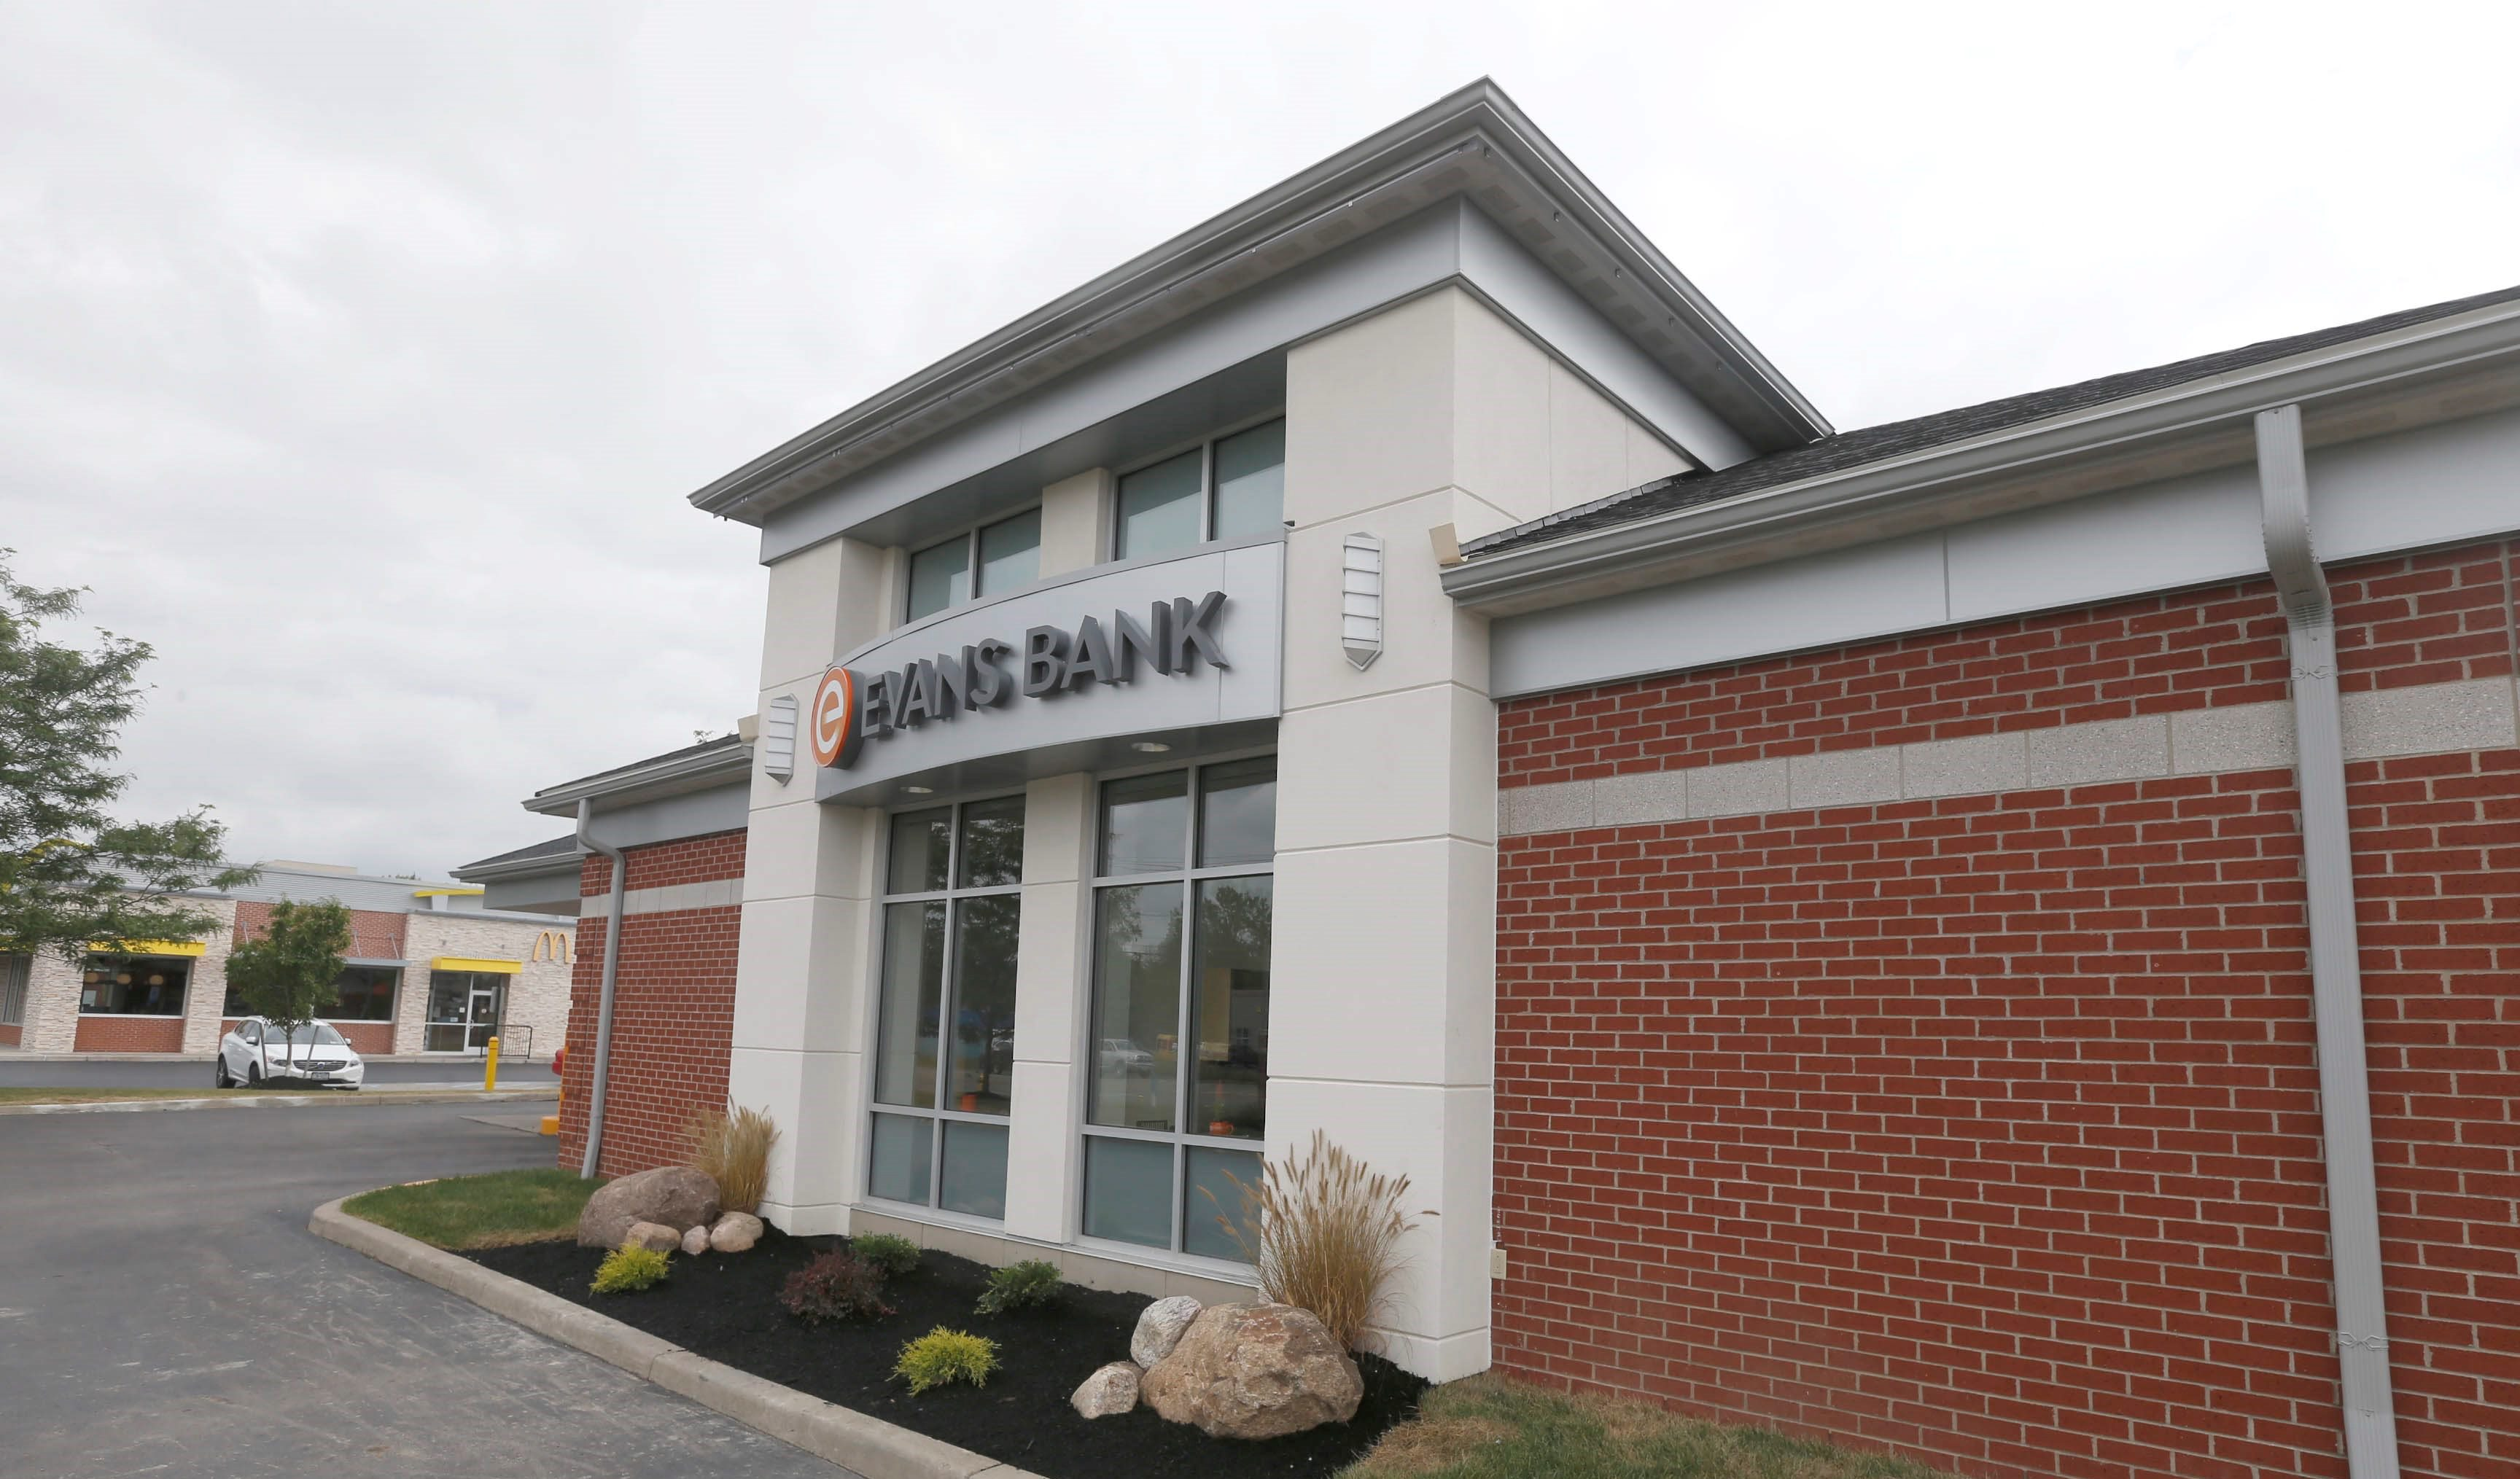 An Evans Bank location on Transit Road in Depew. (Robert Kirkham/Buffalo News)